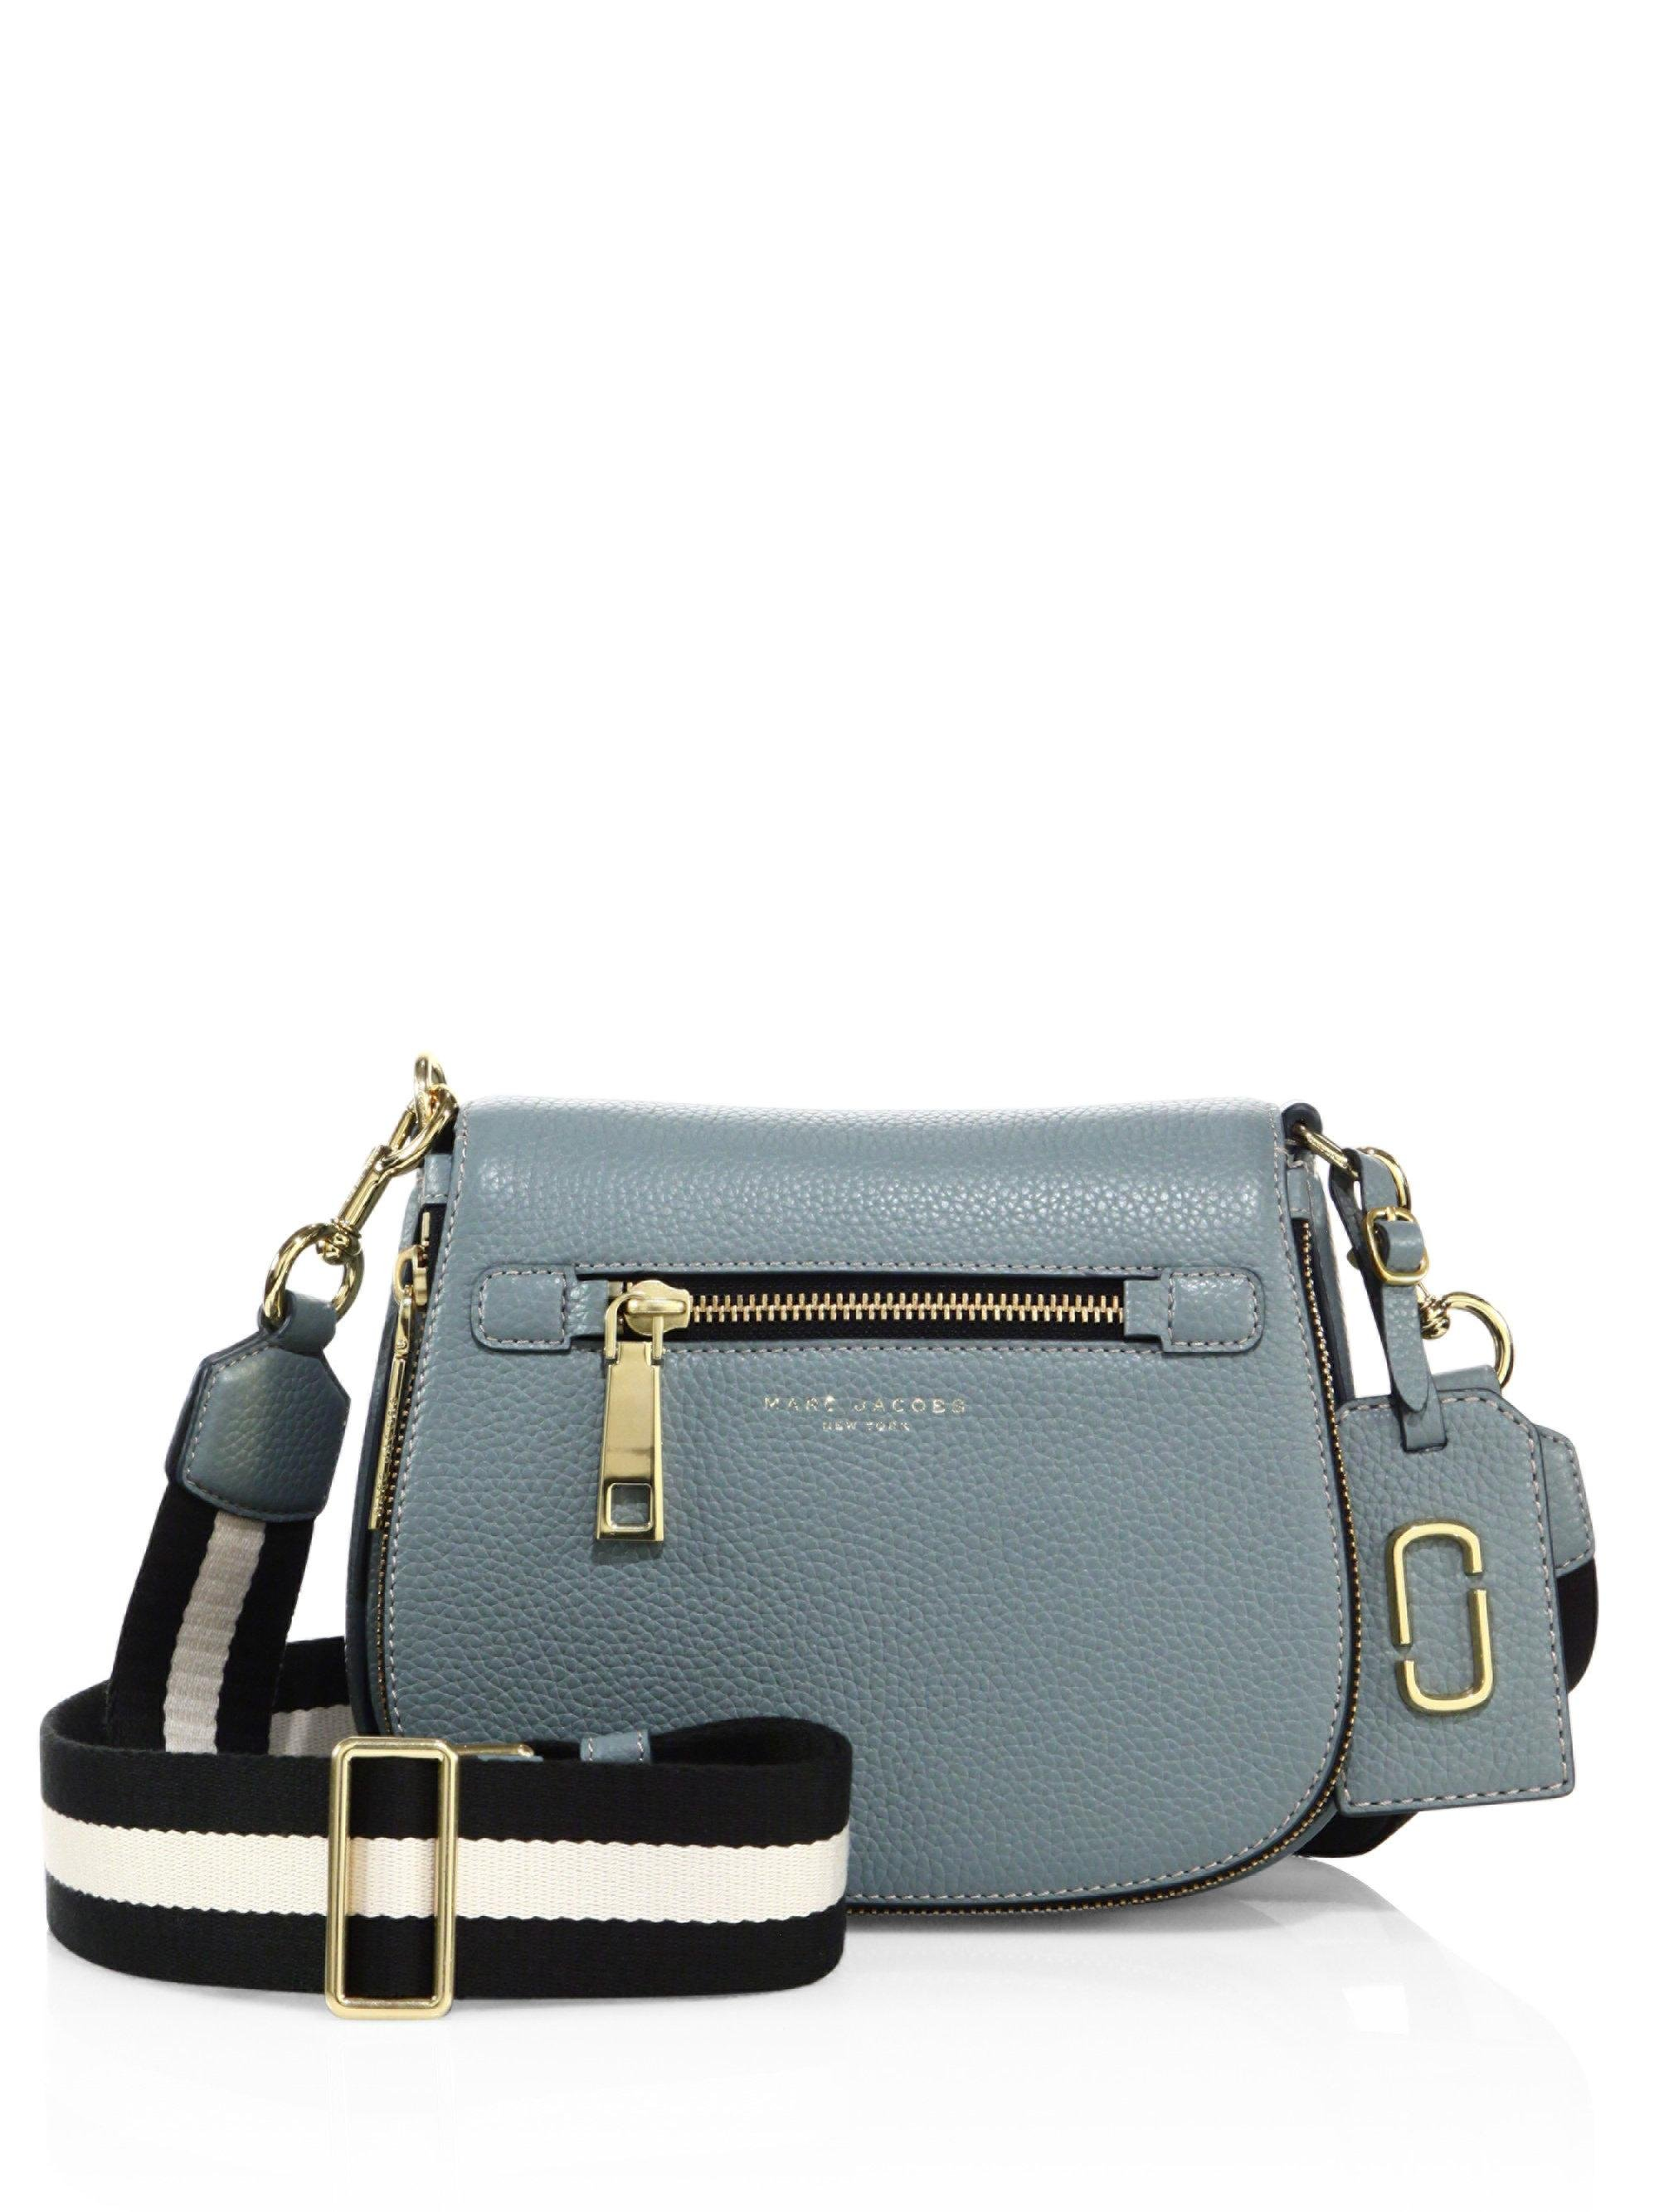 ff539a0003b82 Lyst - Marc Jacobs Gotham Small Leather Saddle Bag in Blue